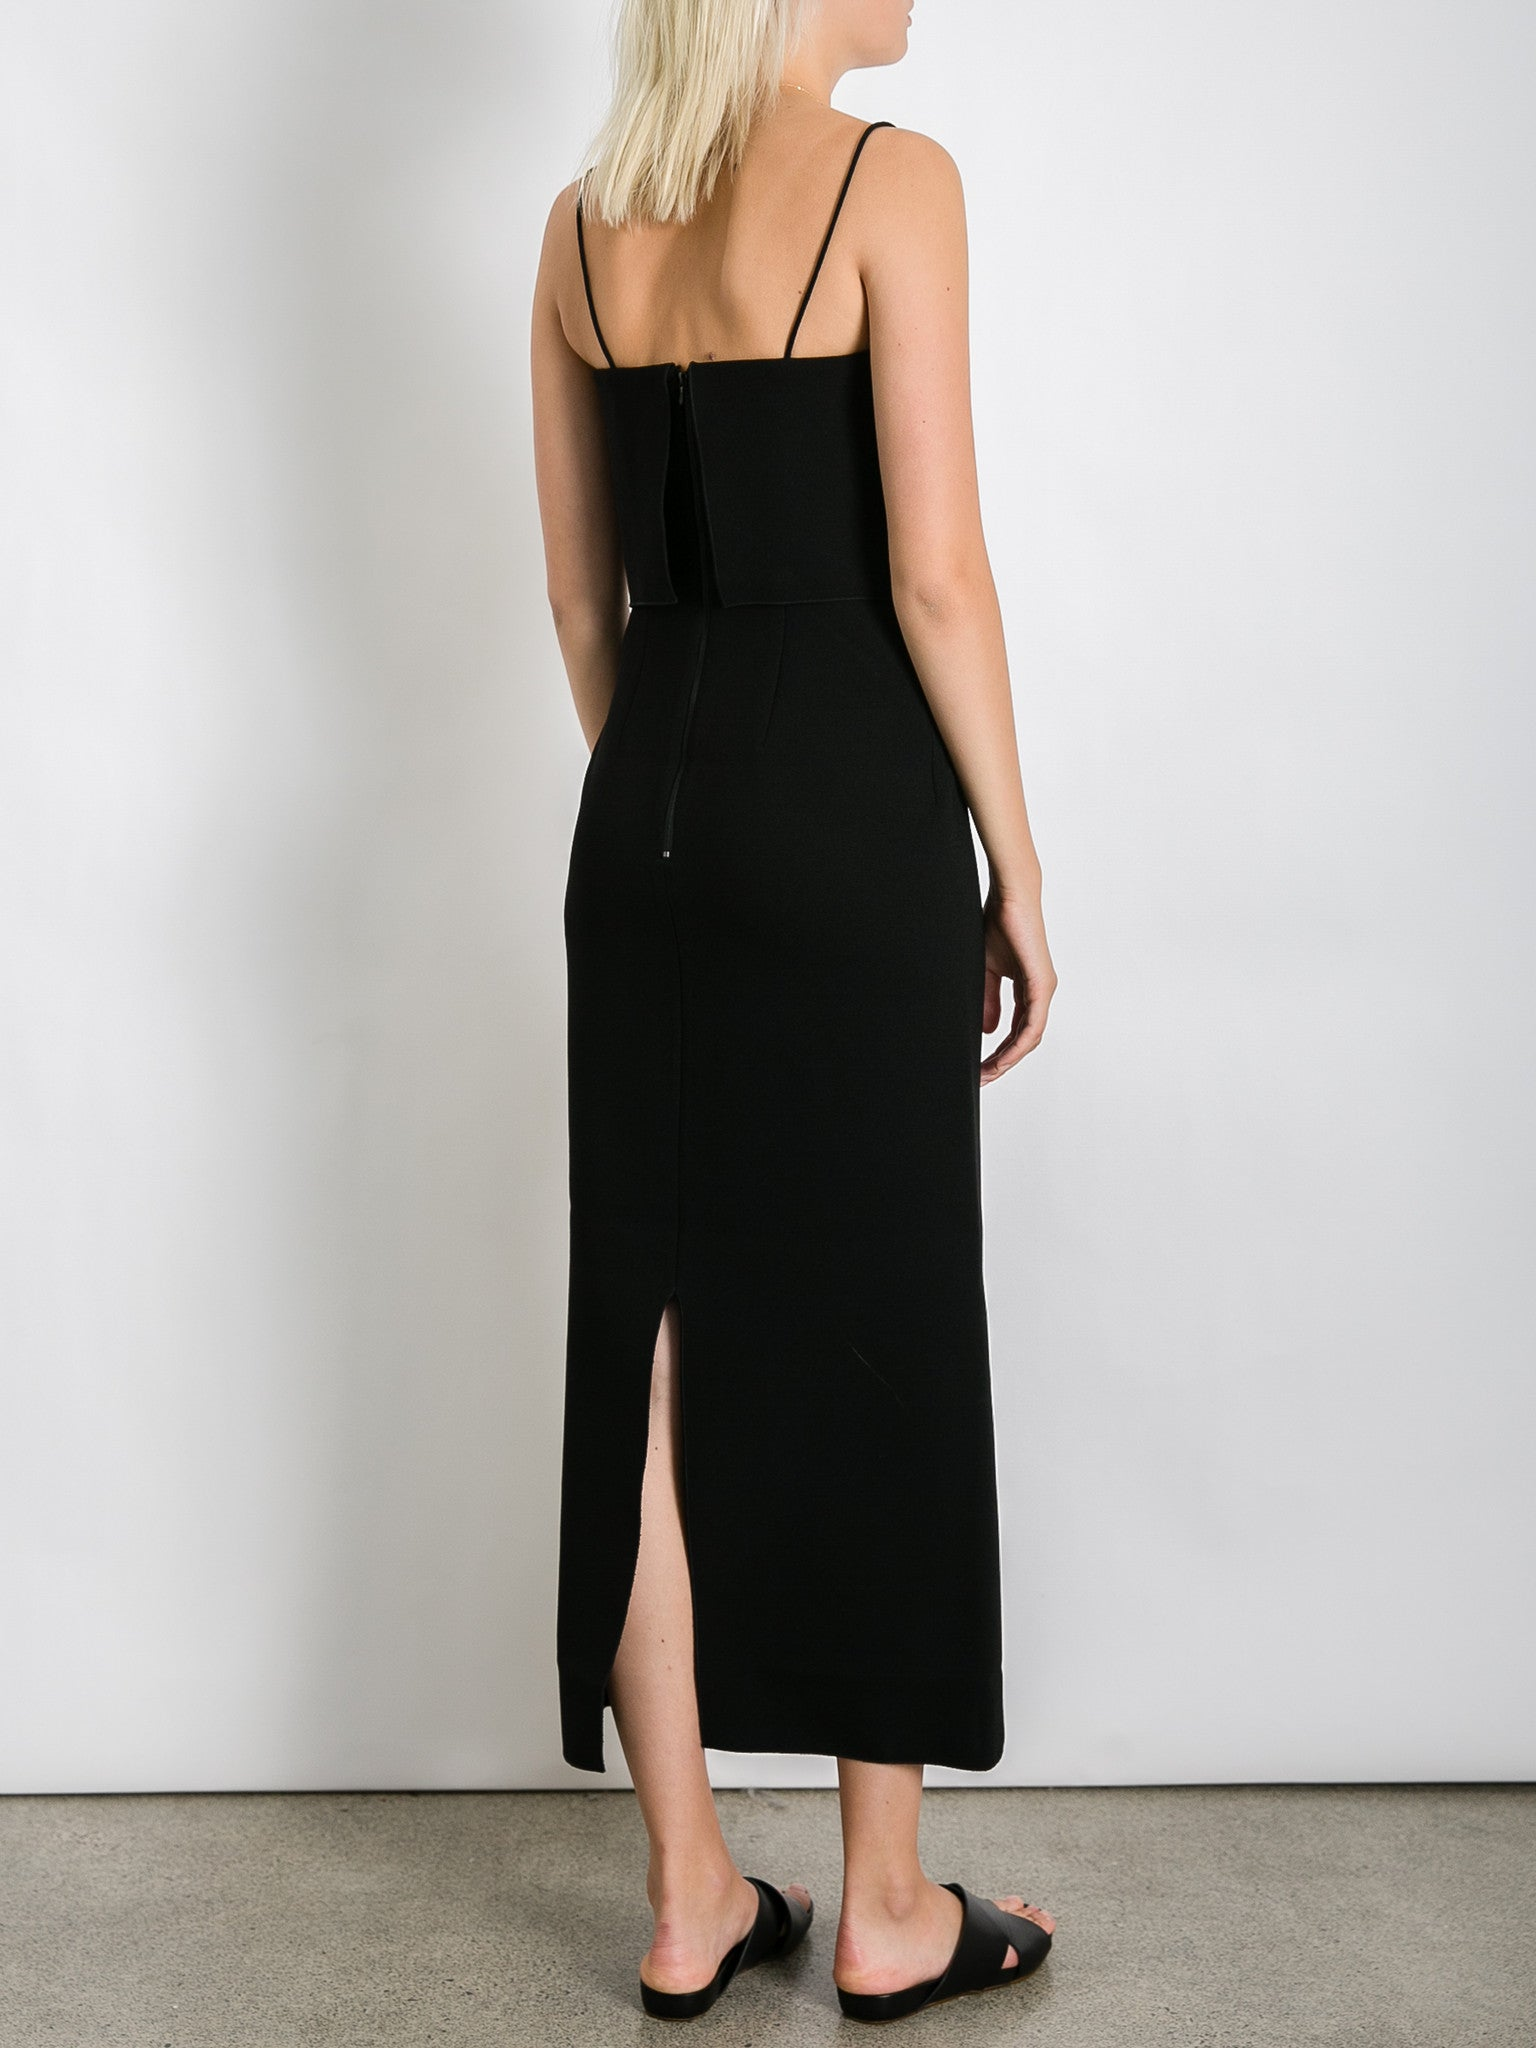 Dion lee black dress